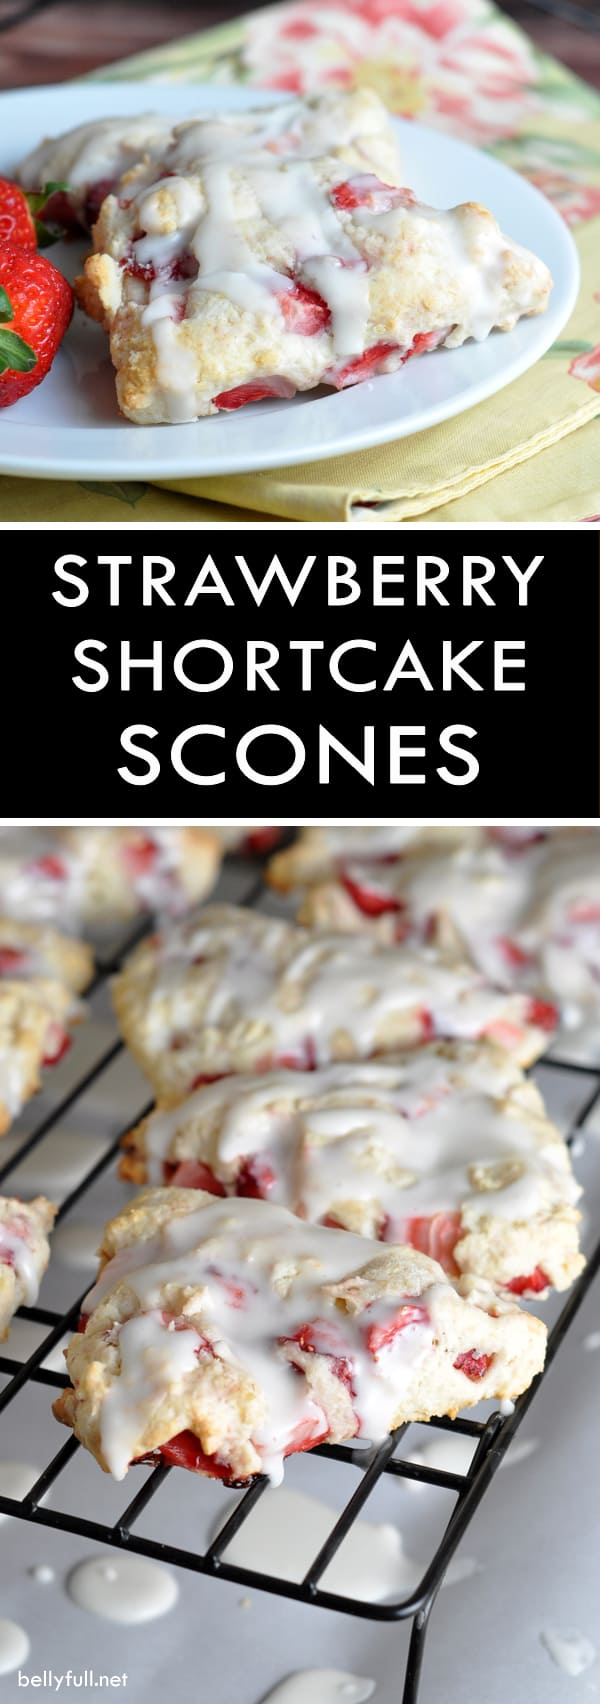 picture of strawberry scones with icing